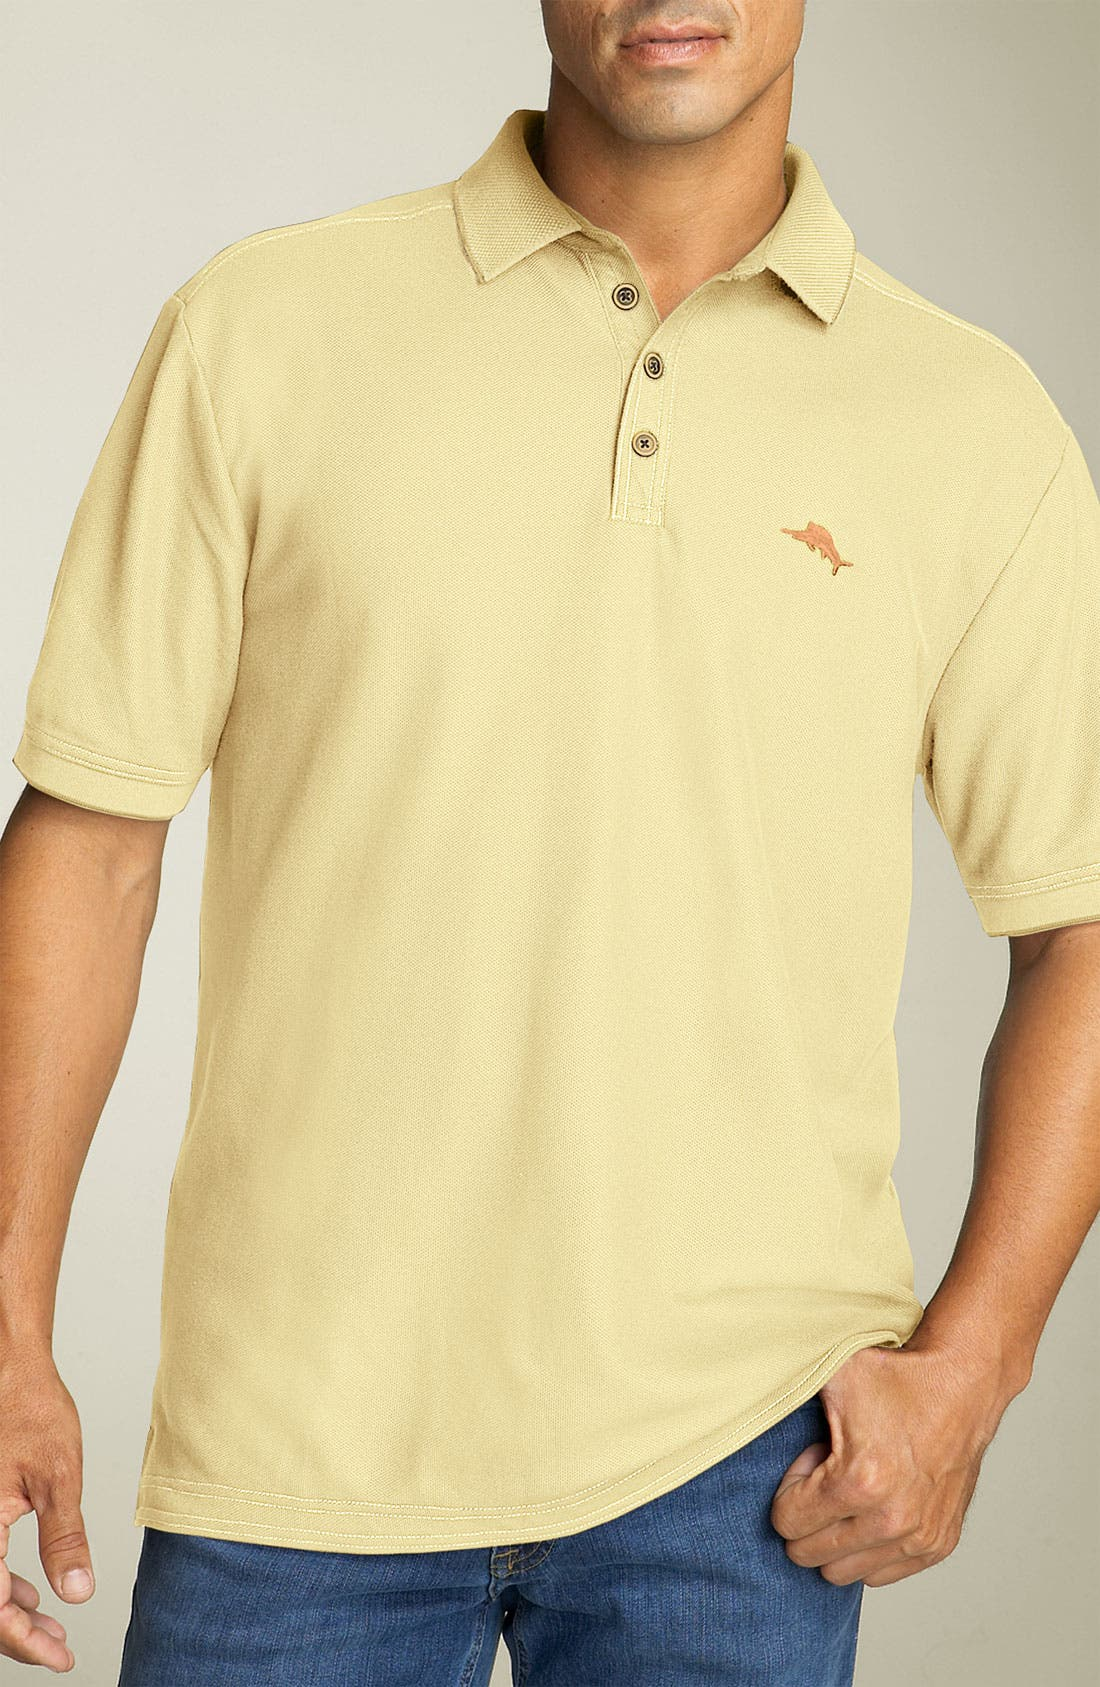 'The Emfielder' Original Fit Piqué Polo,                             Main thumbnail 27, color,